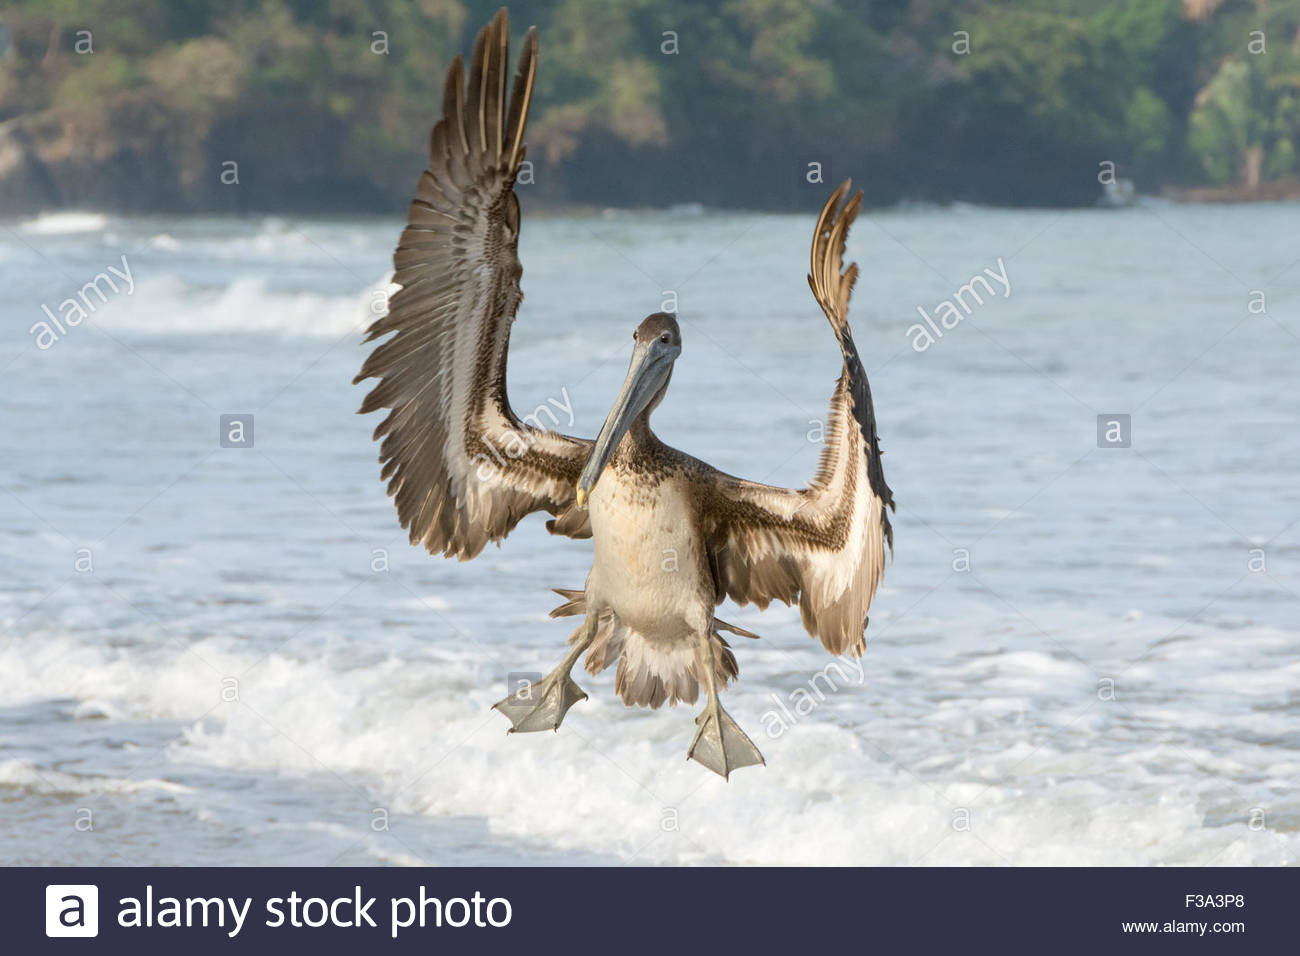 An immature Brown Pelican coming in for a beach landing with wings extended and webbed feet dangling. - Stock Image